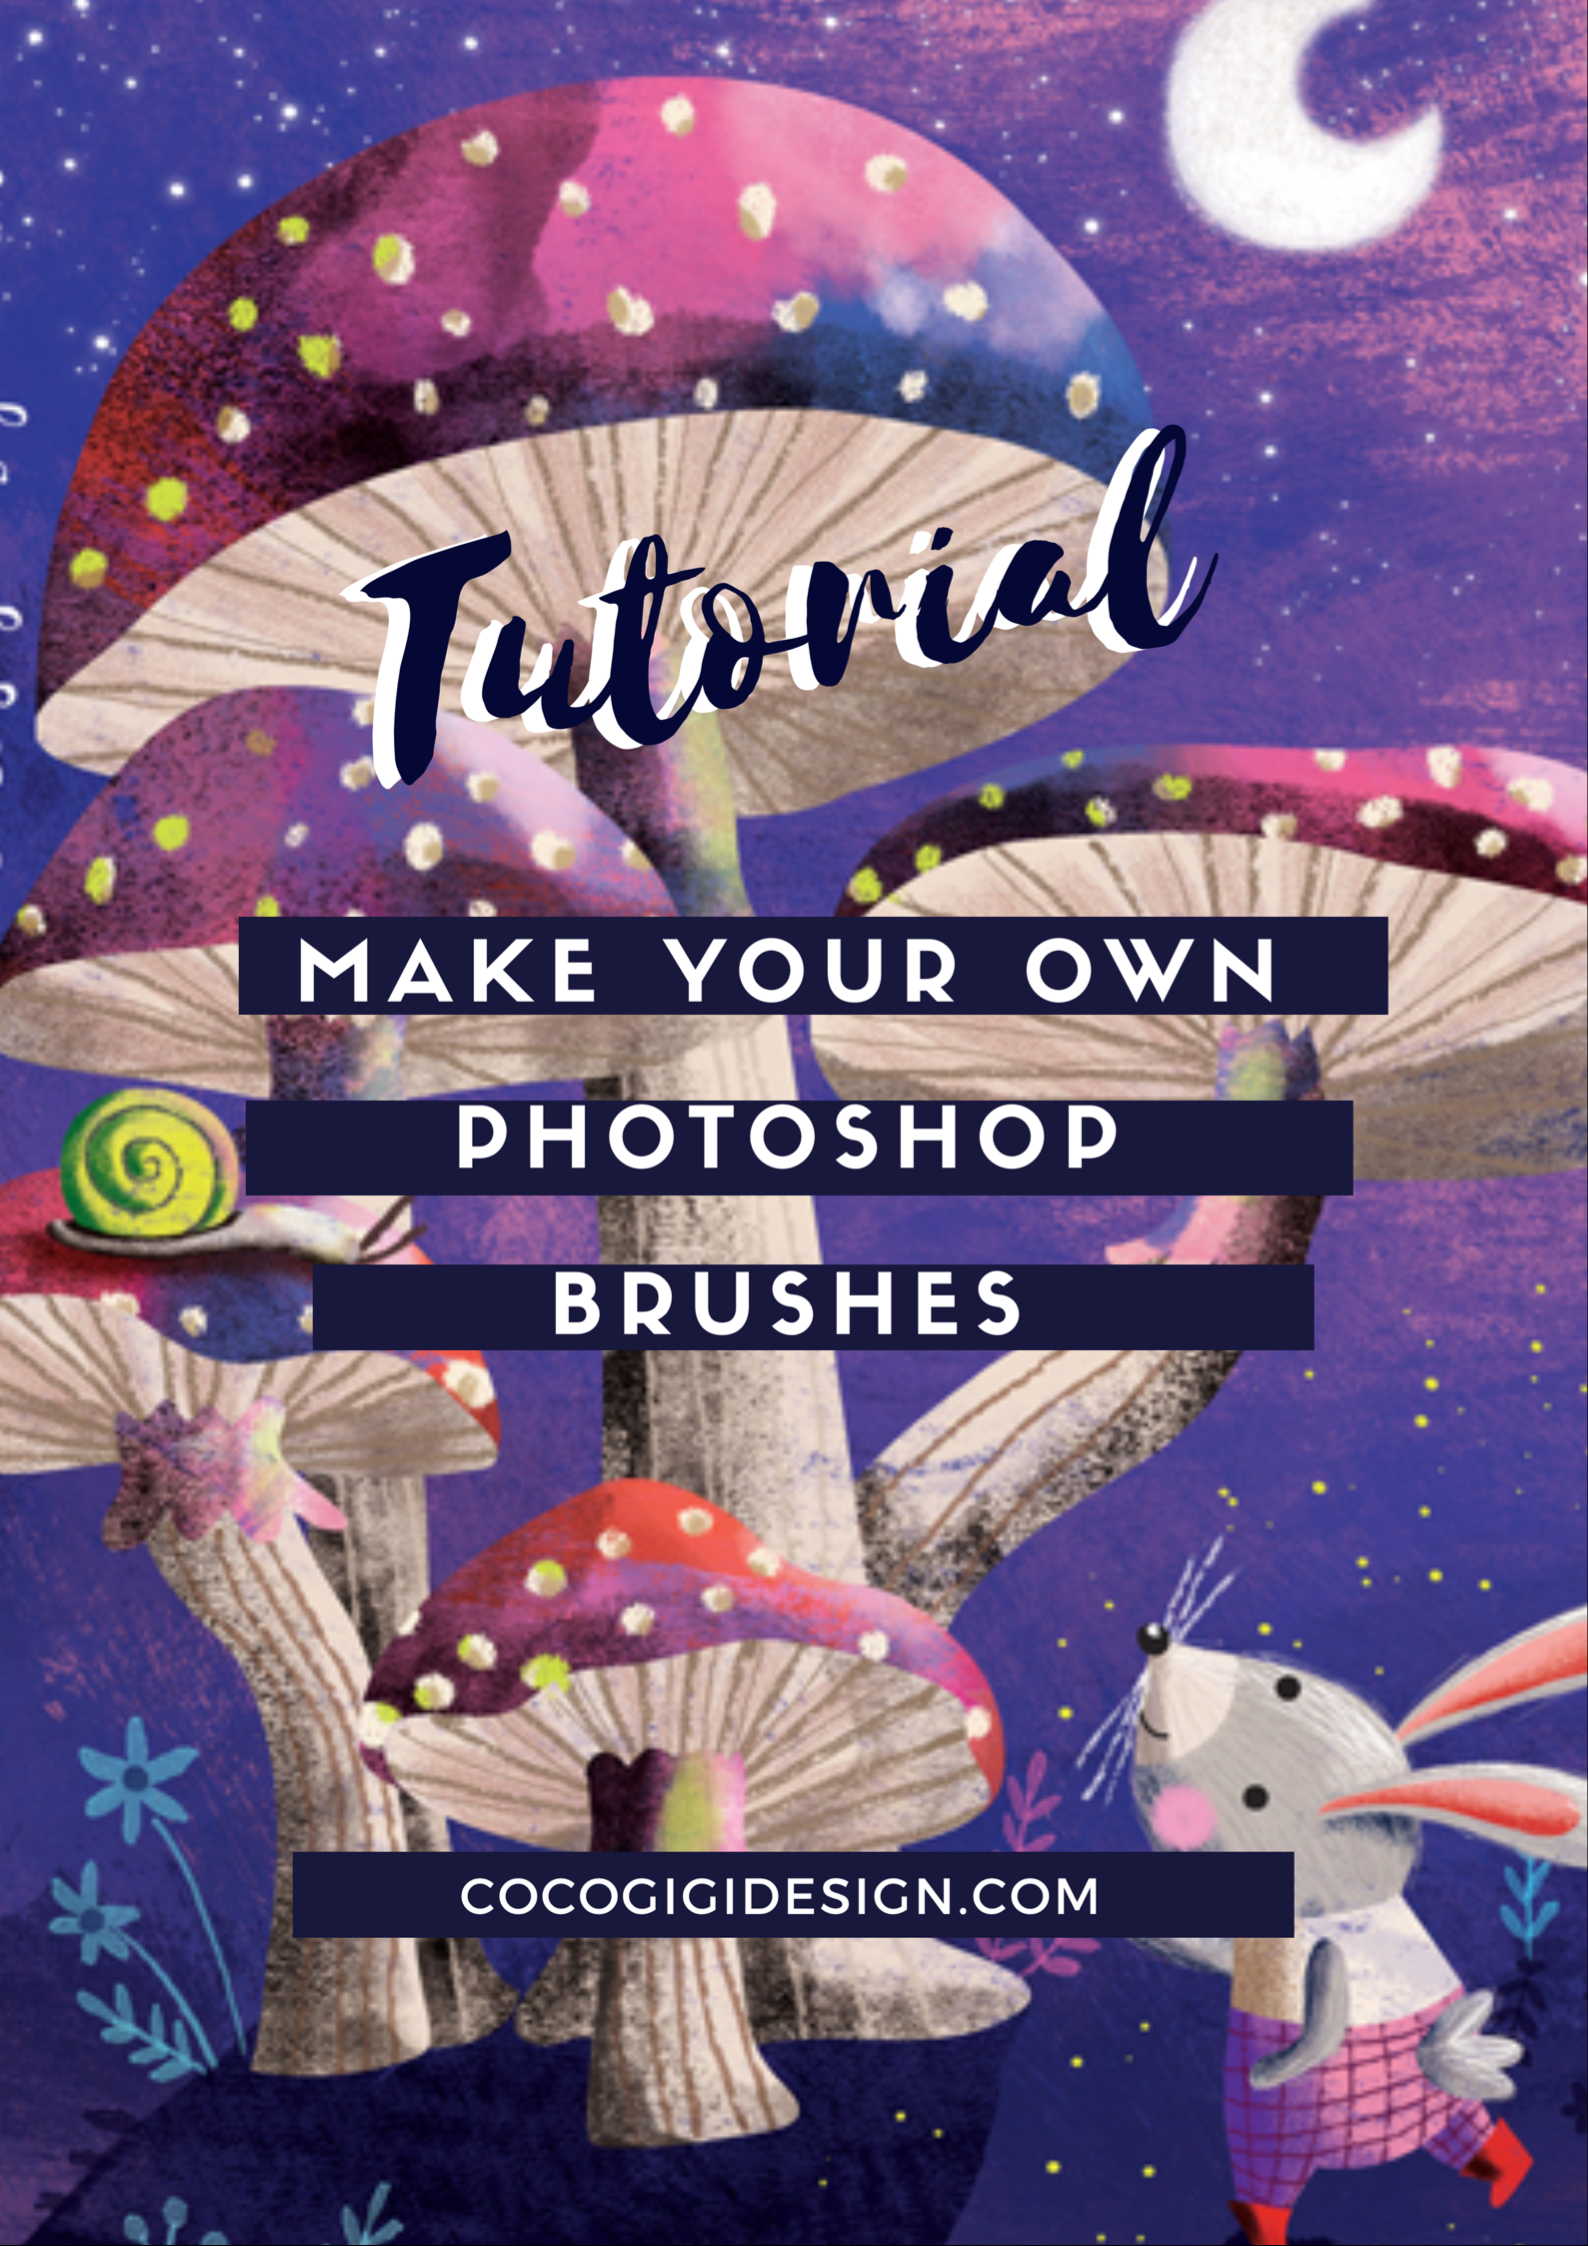 Tutorial - Make your own photoshop brushes - Gina Maldonado.PNG